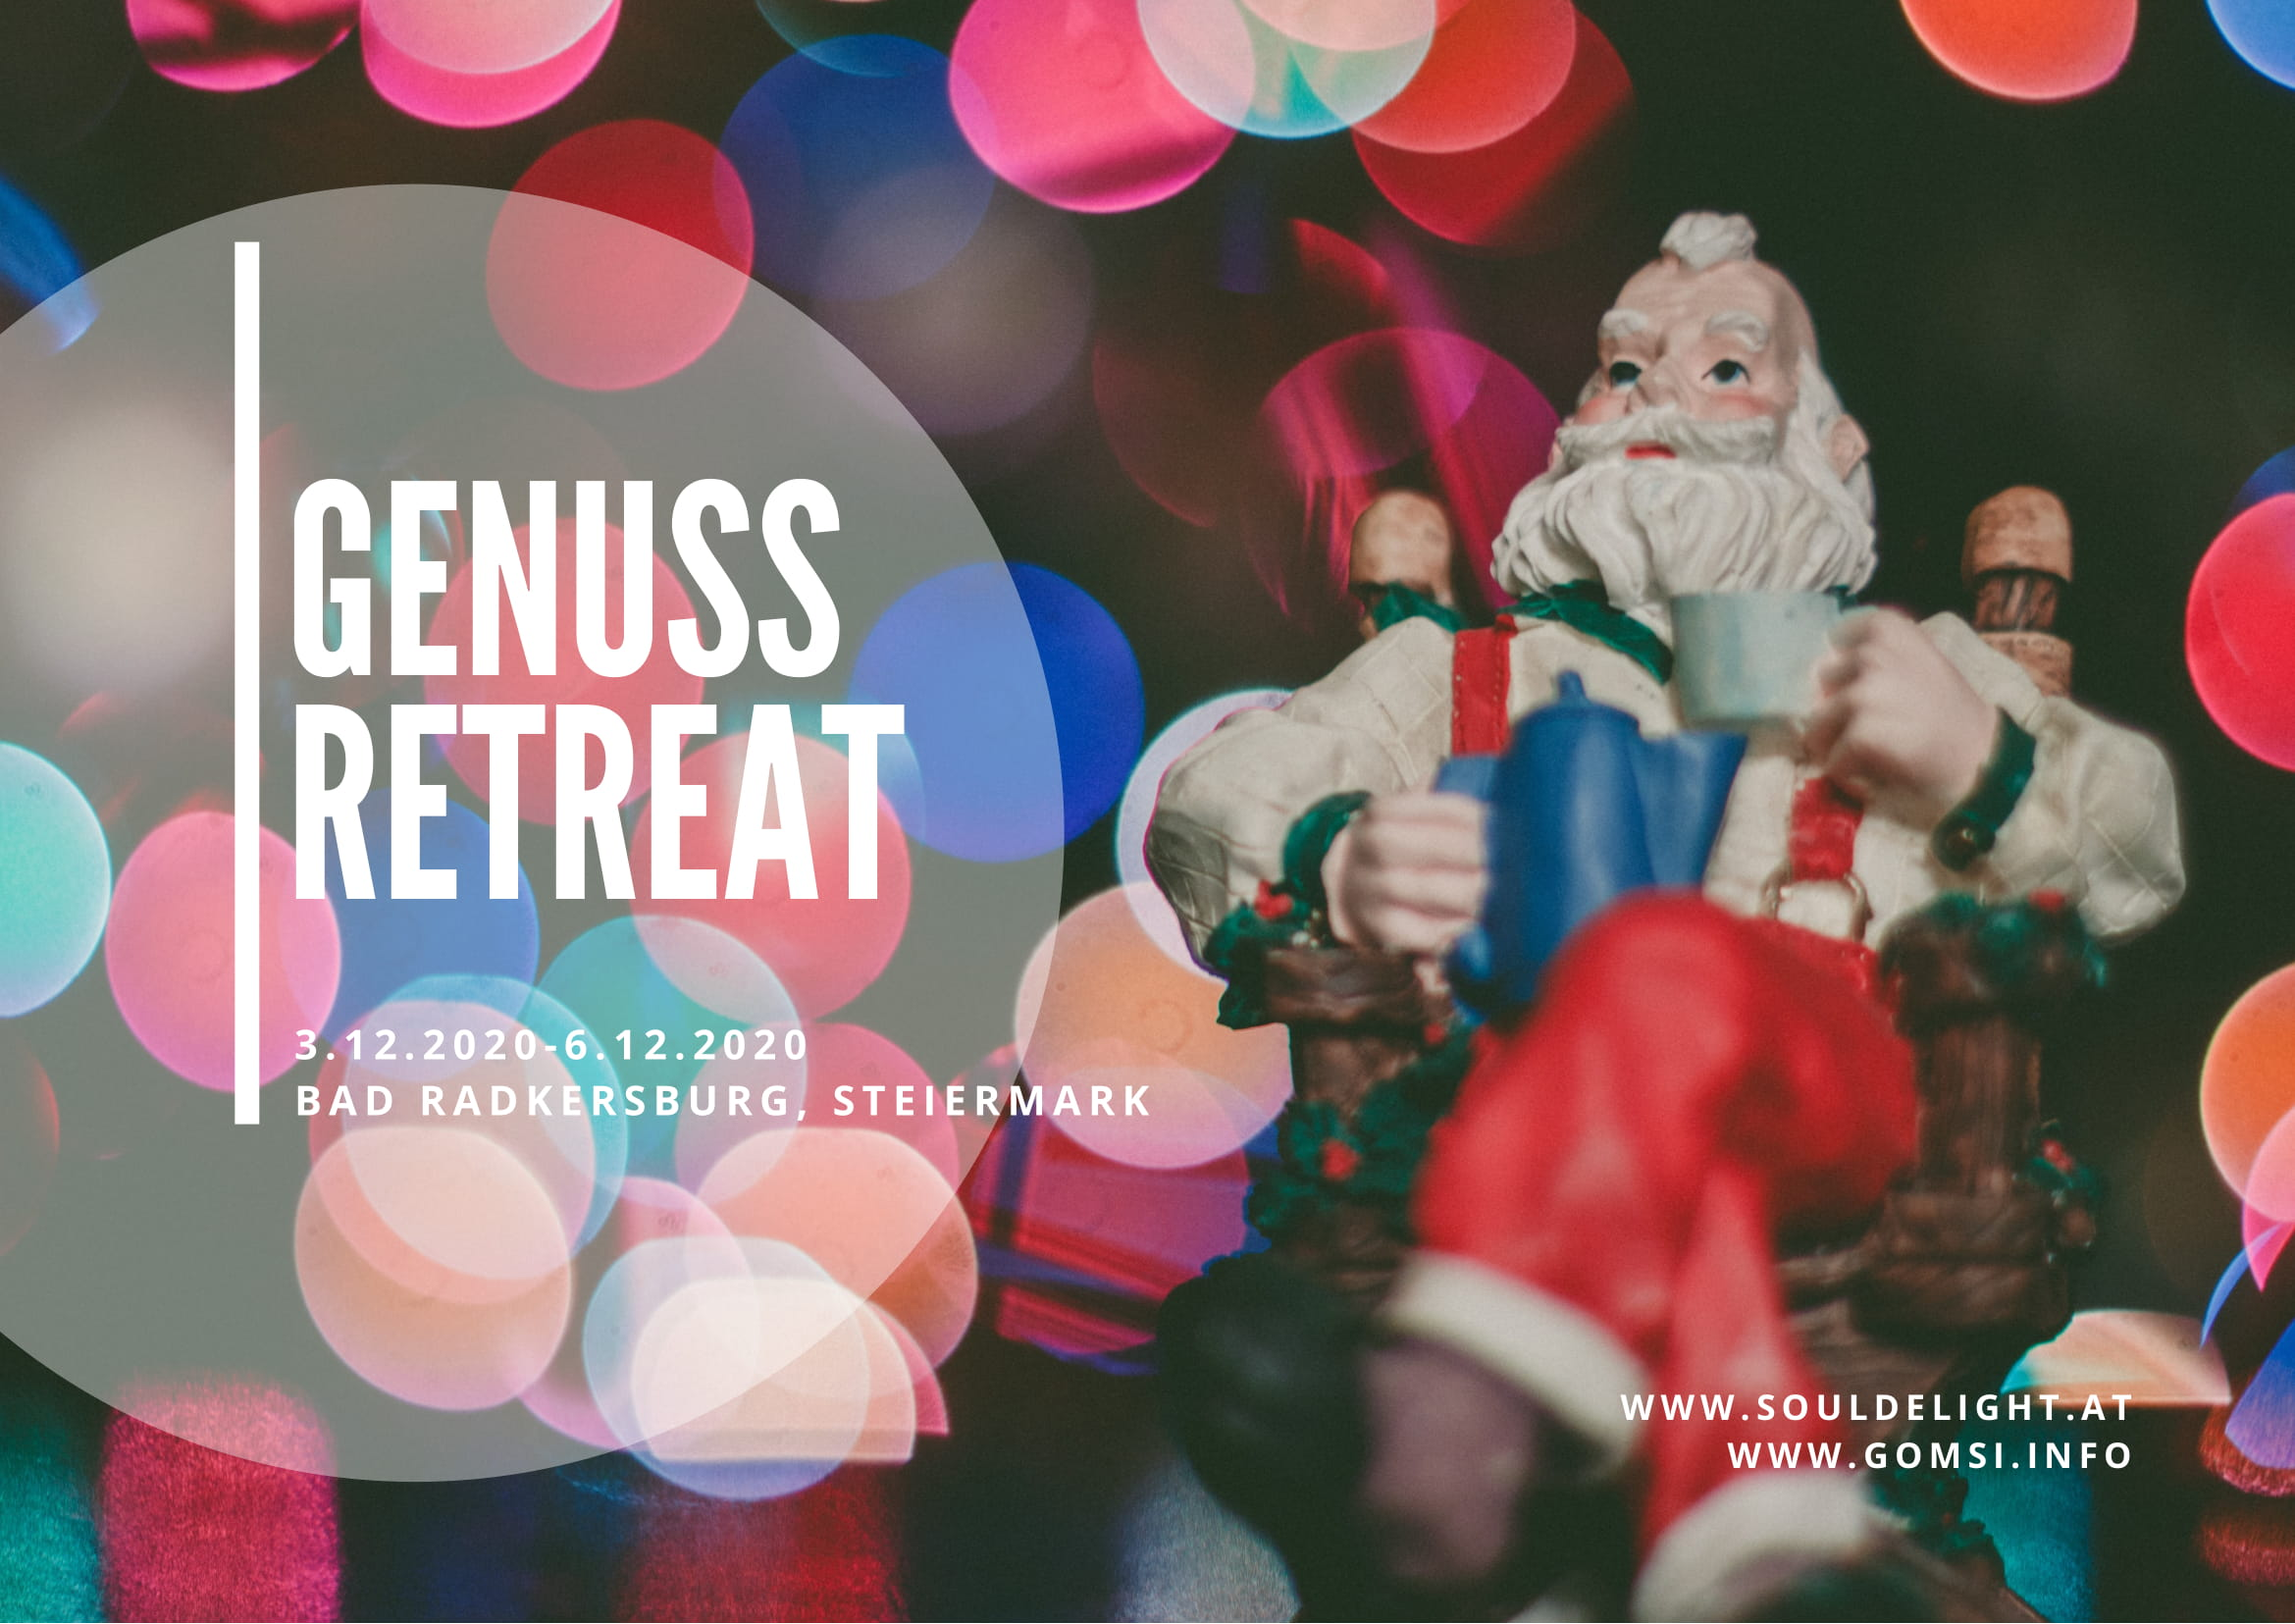 Genuss retreat_Gomsi